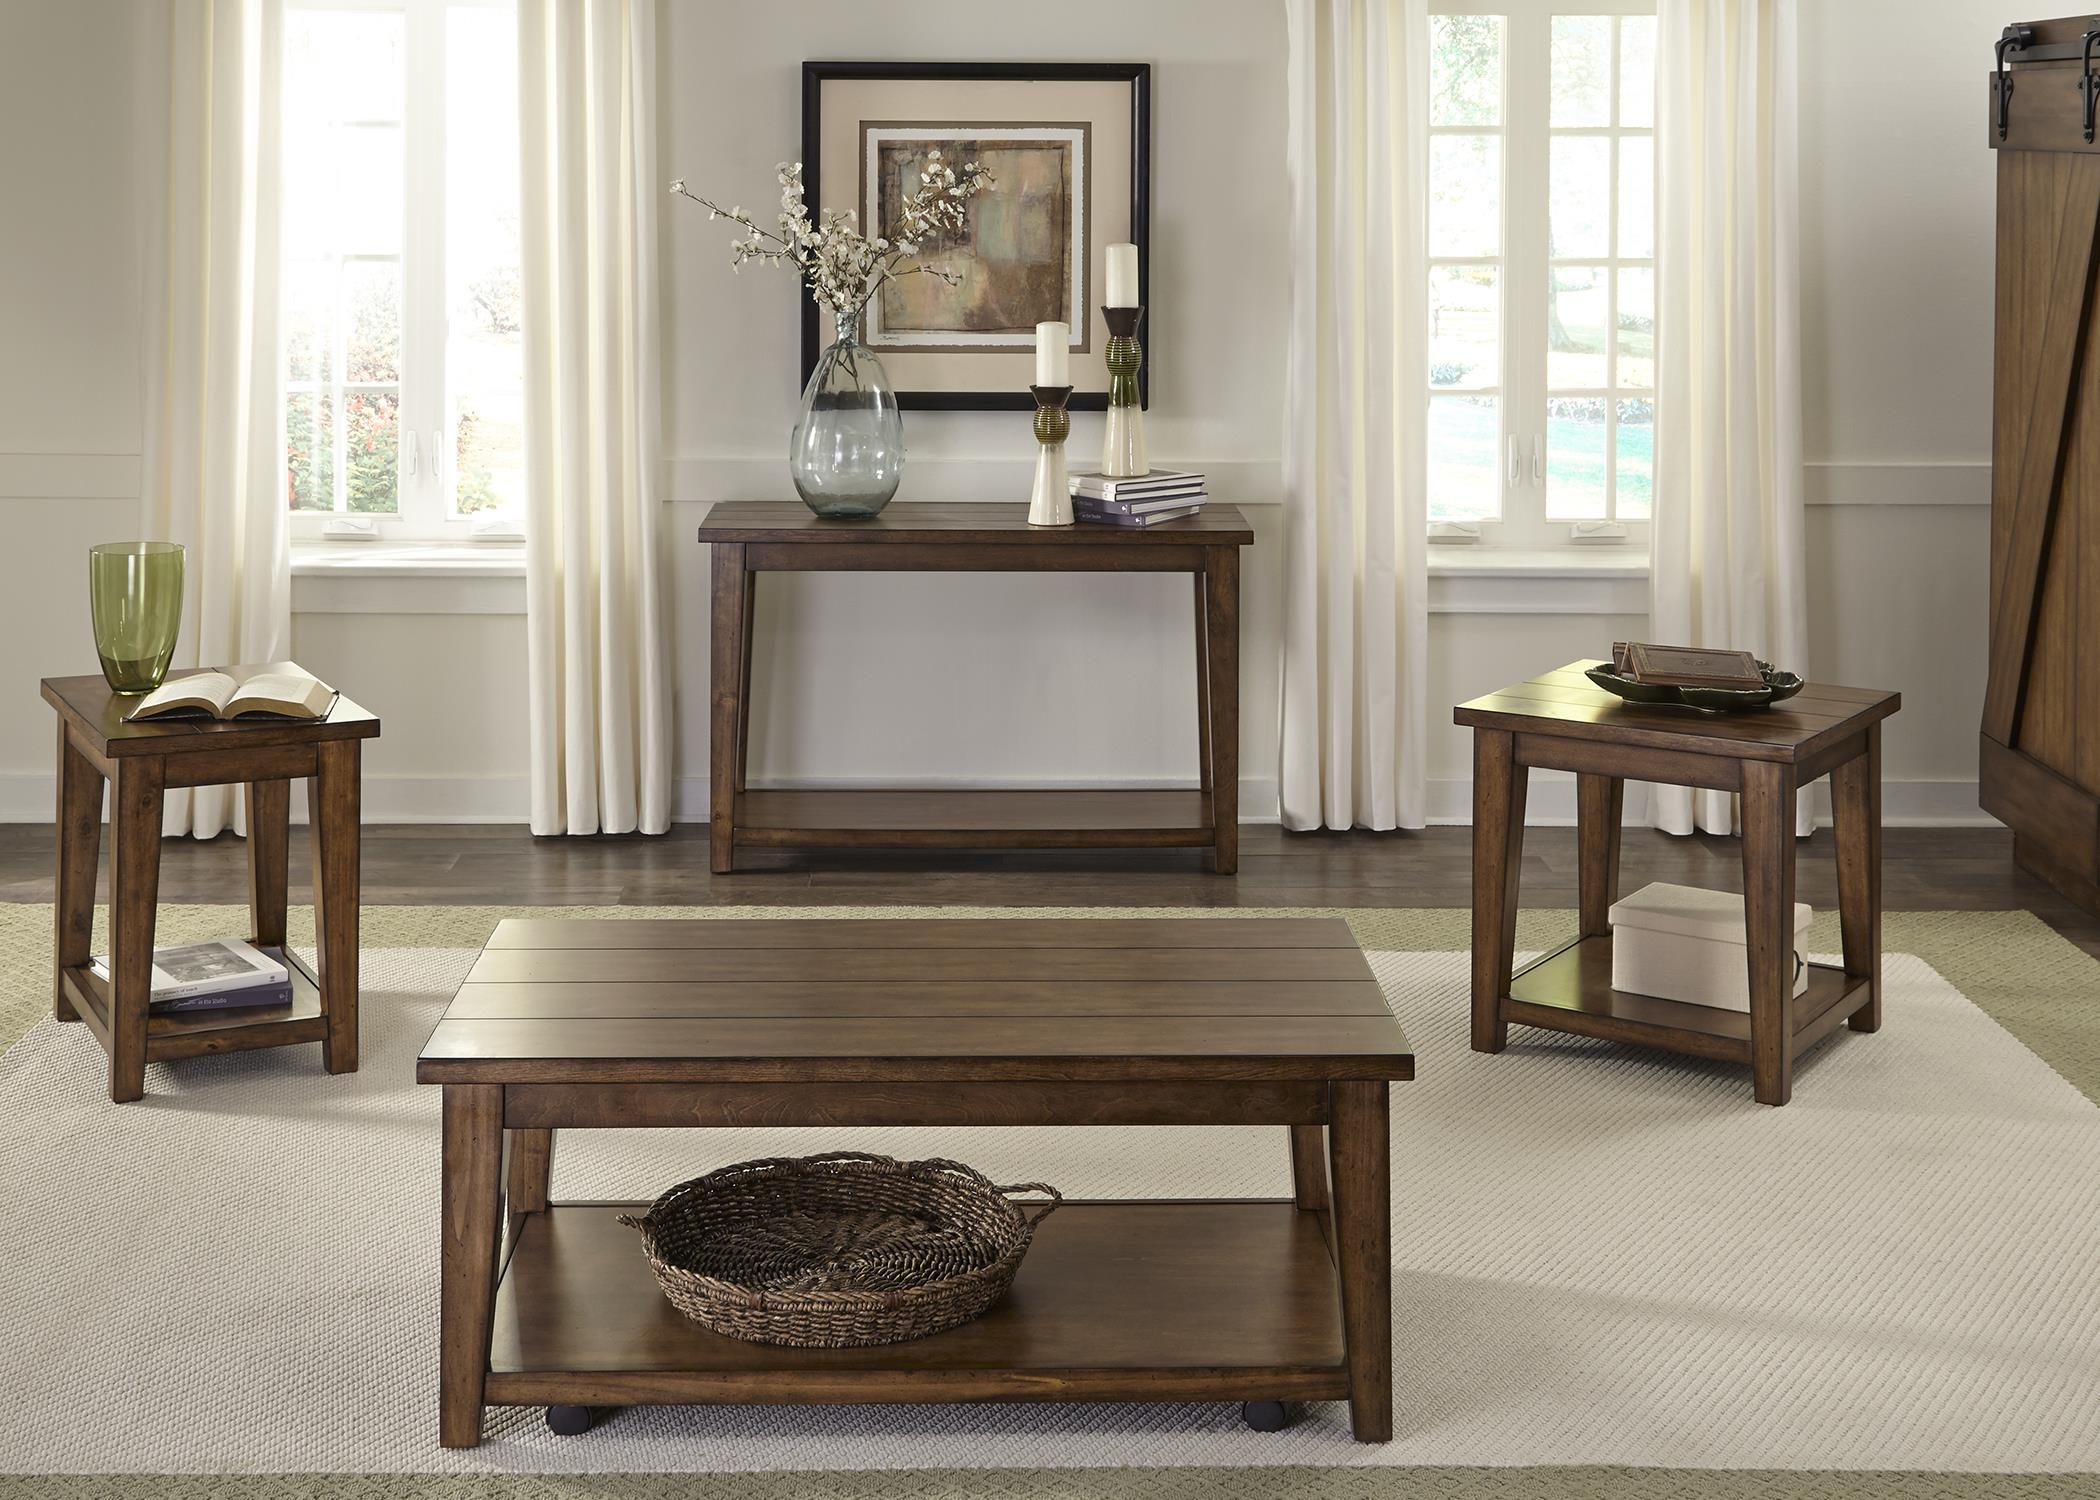 Liberty Furniture Lancaster Rustic Occasional Table Group - Item Number: 712-OT Occasional Table Group